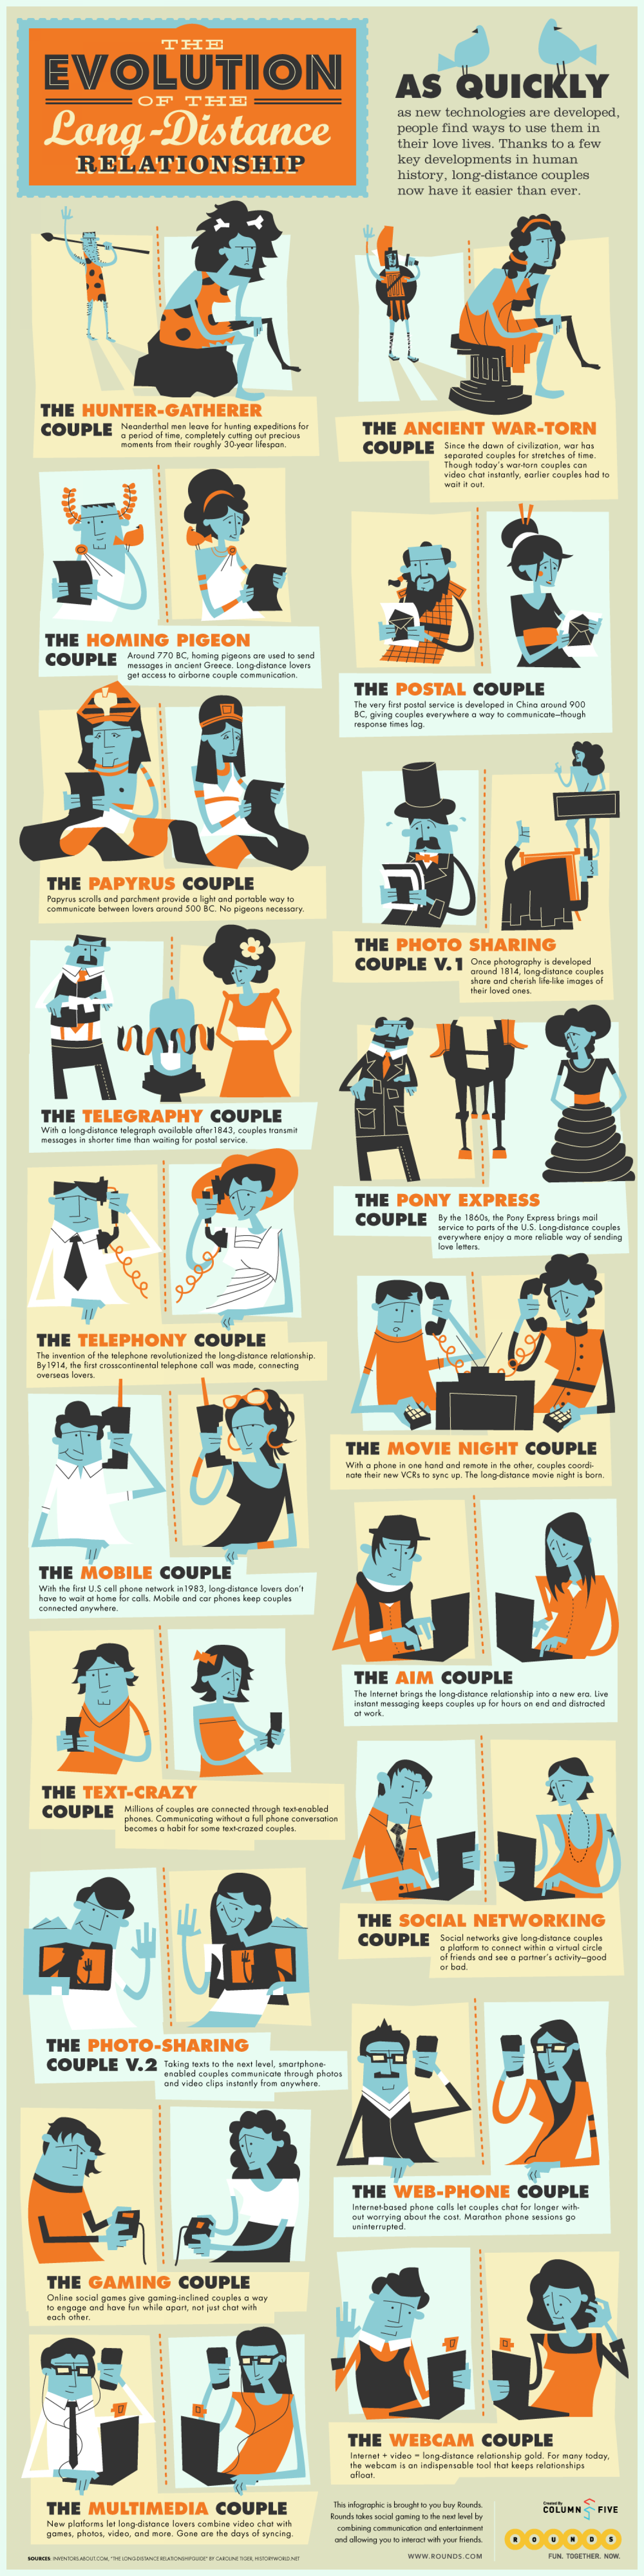 The Evolution of Long Distance Relationships Infographic